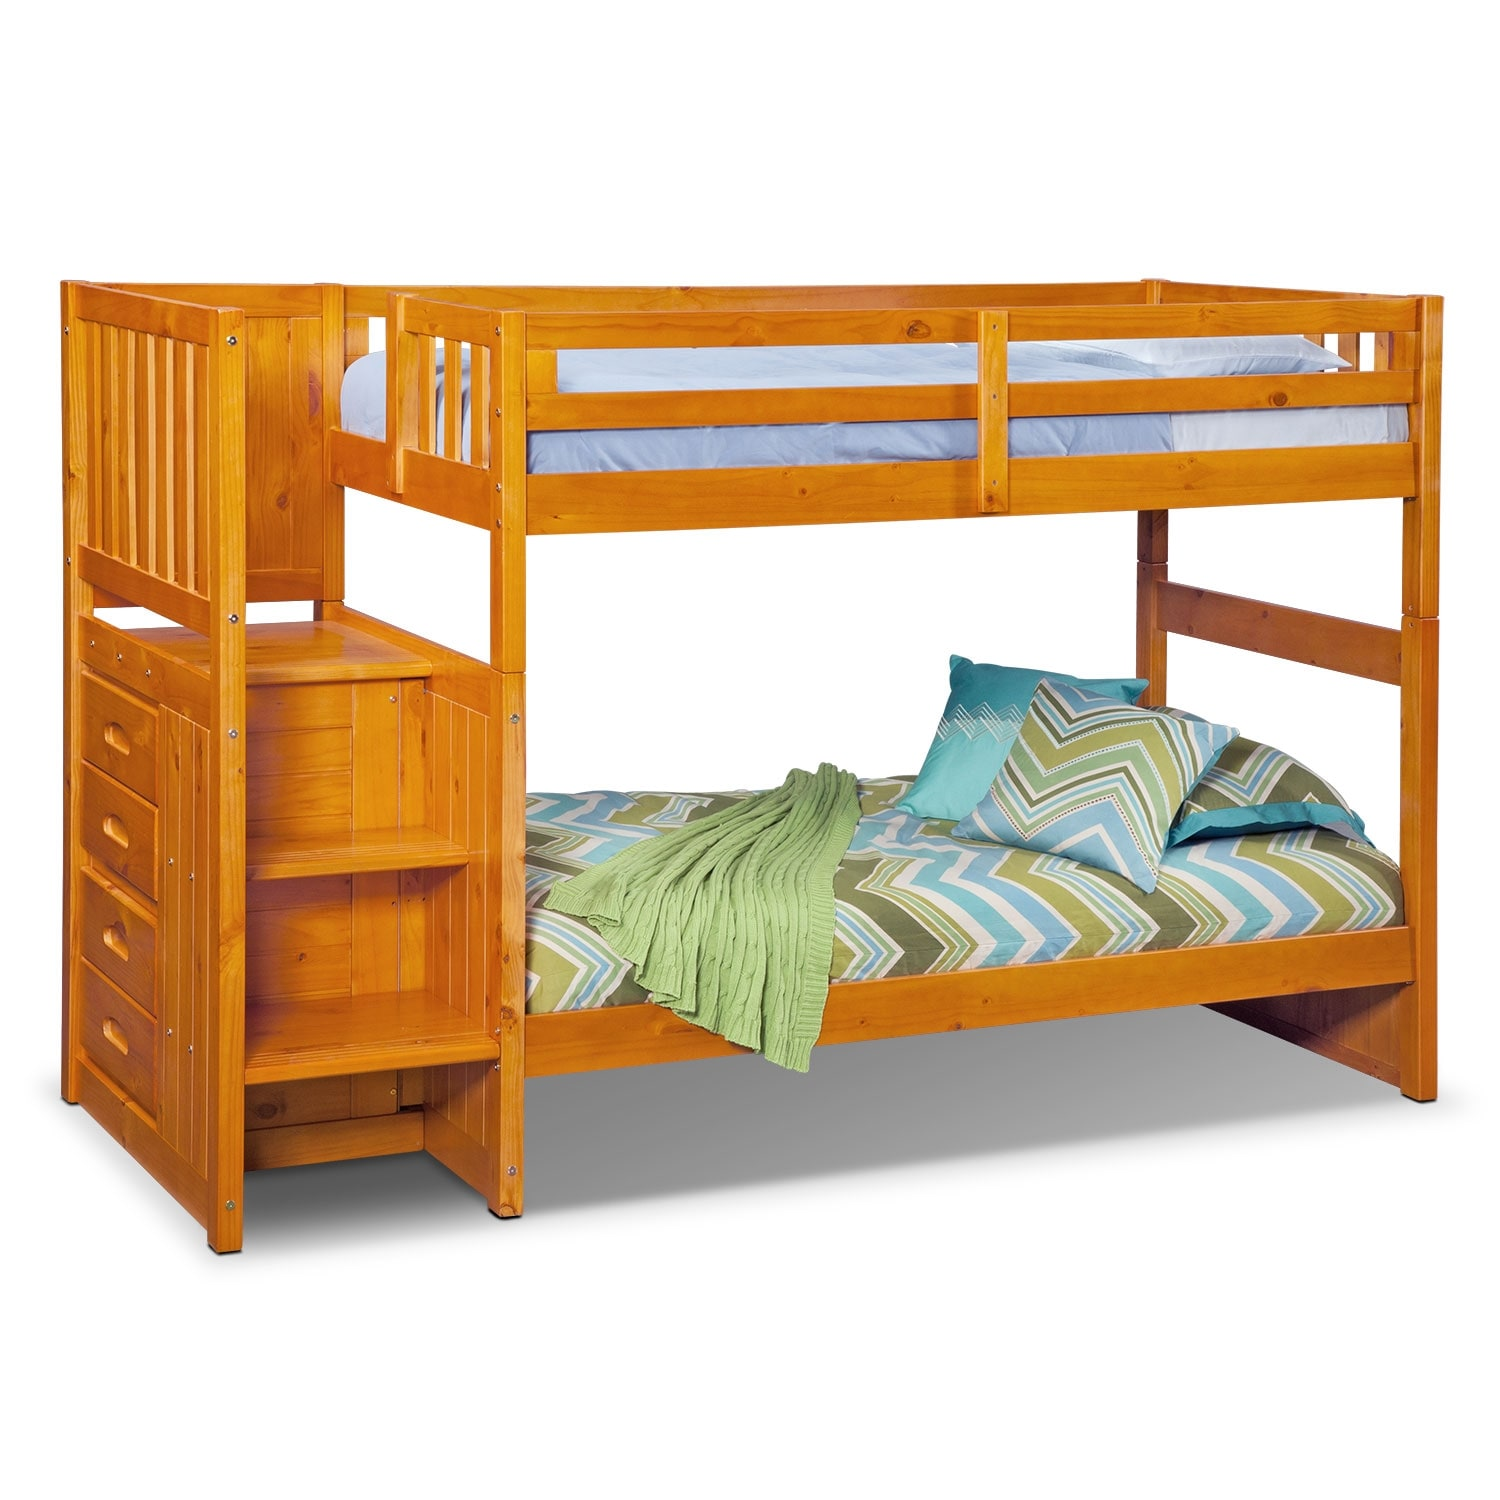 Ranger pine twin twin bunk bed w stairs and 4 drawer storage value city furniture - Bunk bed with drawer steps ...